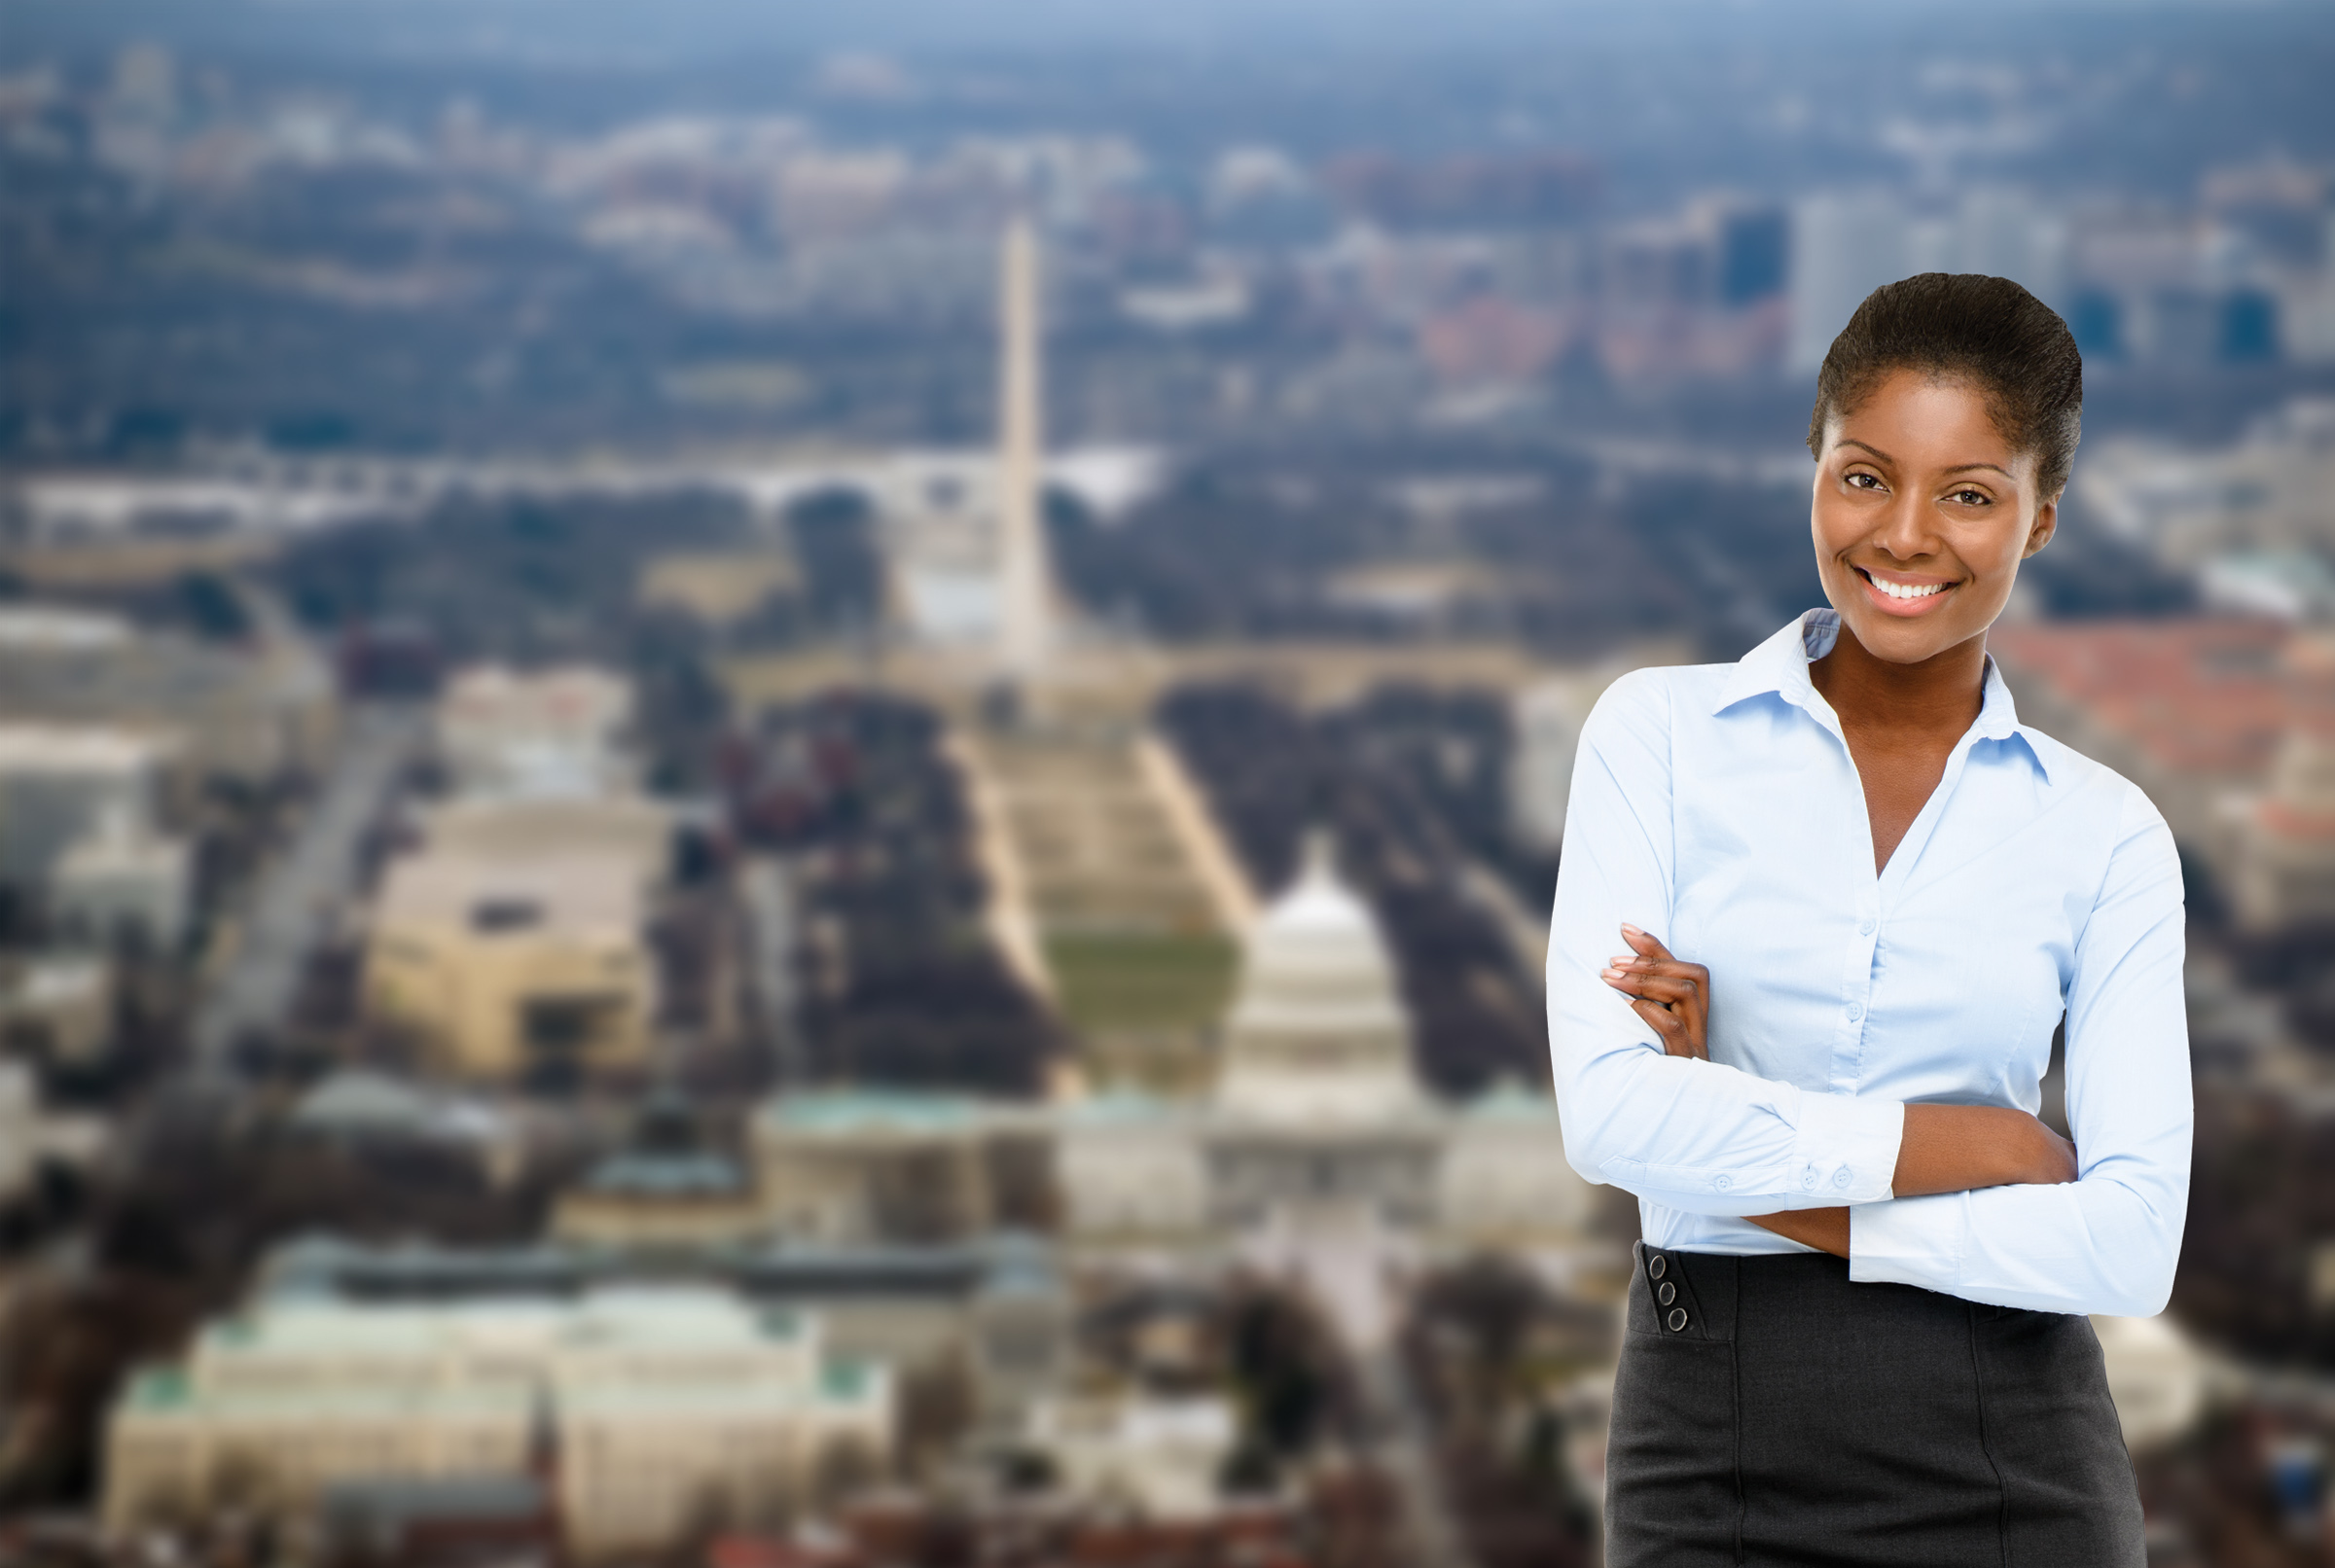 success story - confident female executive, arms crossed, smiling, with blurred background picture of the washington, dc mall area